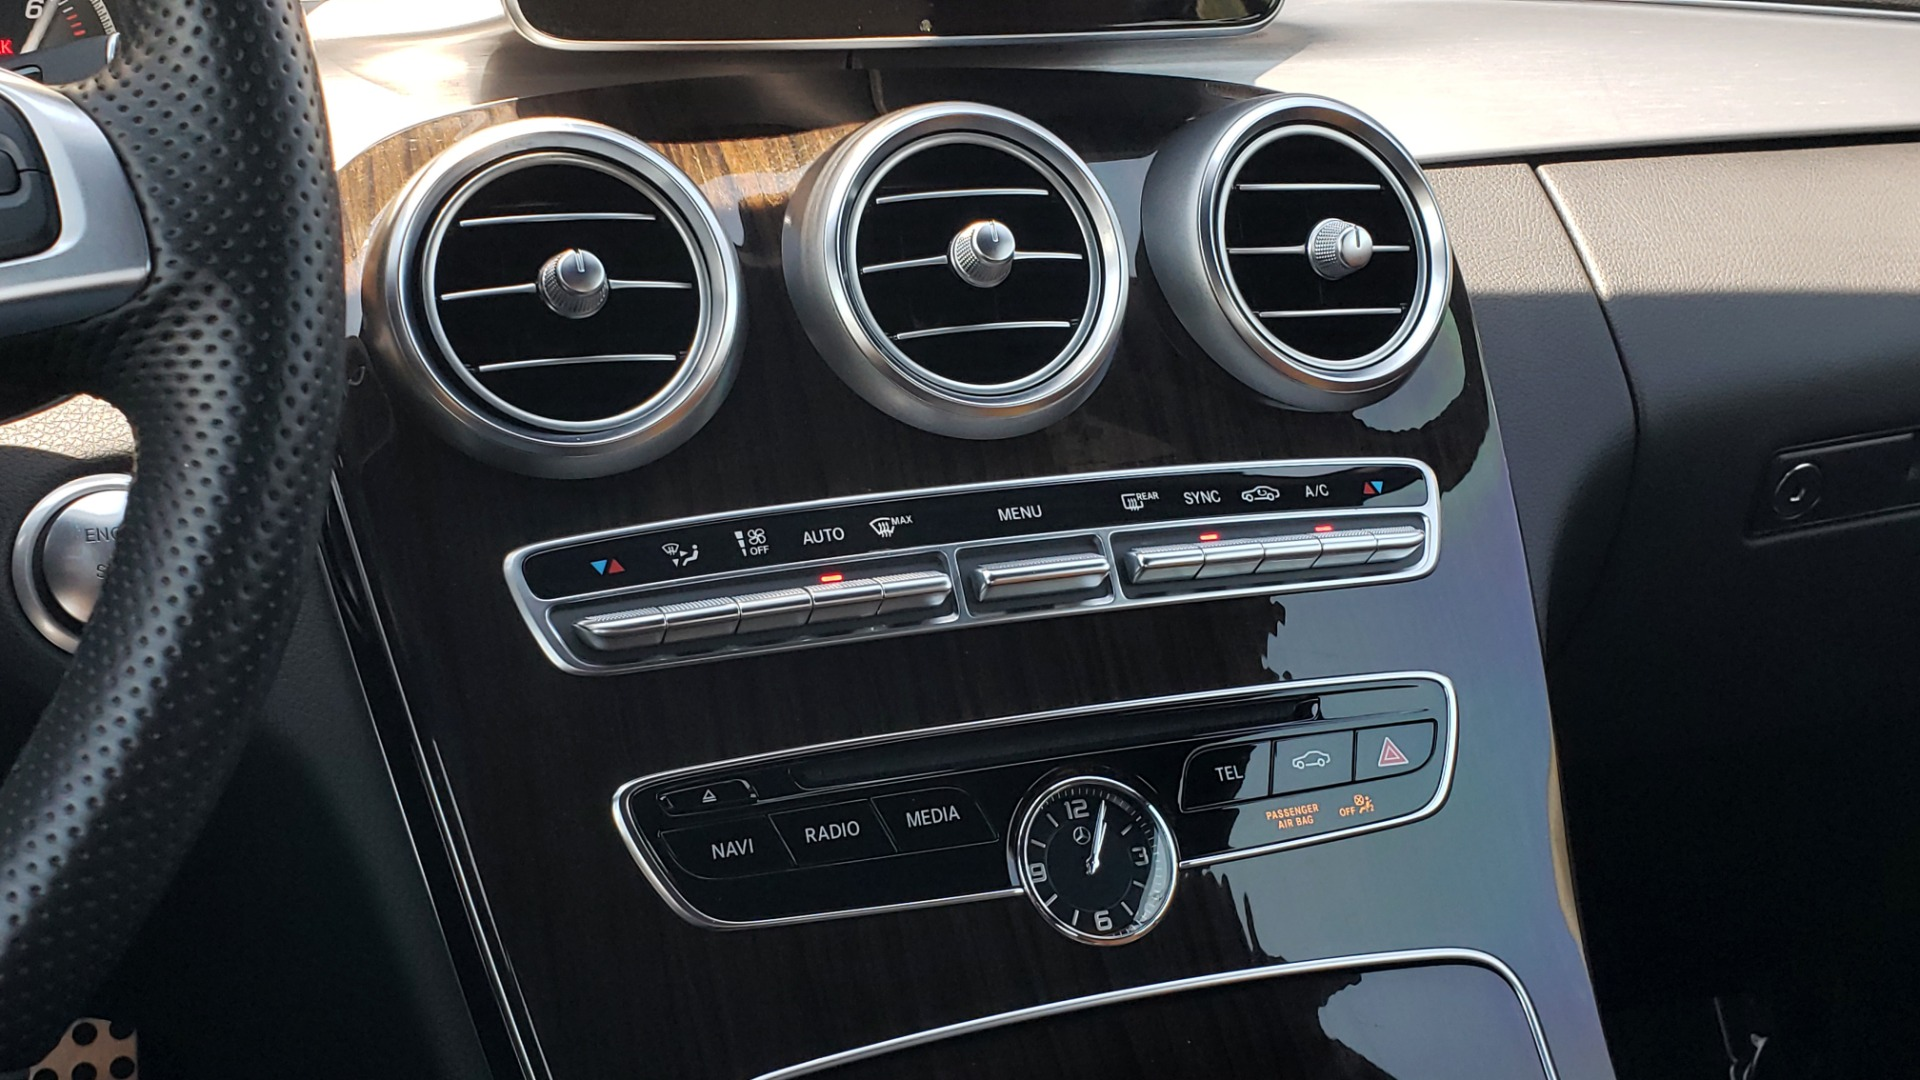 Used 2018 Mercedes-Benz C-CLASS C 300 CABRIOLET PREMIUM / AWD / BURMESTER SND / APPLE / REARVIEW for sale $44,995 at Formula Imports in Charlotte NC 28227 71